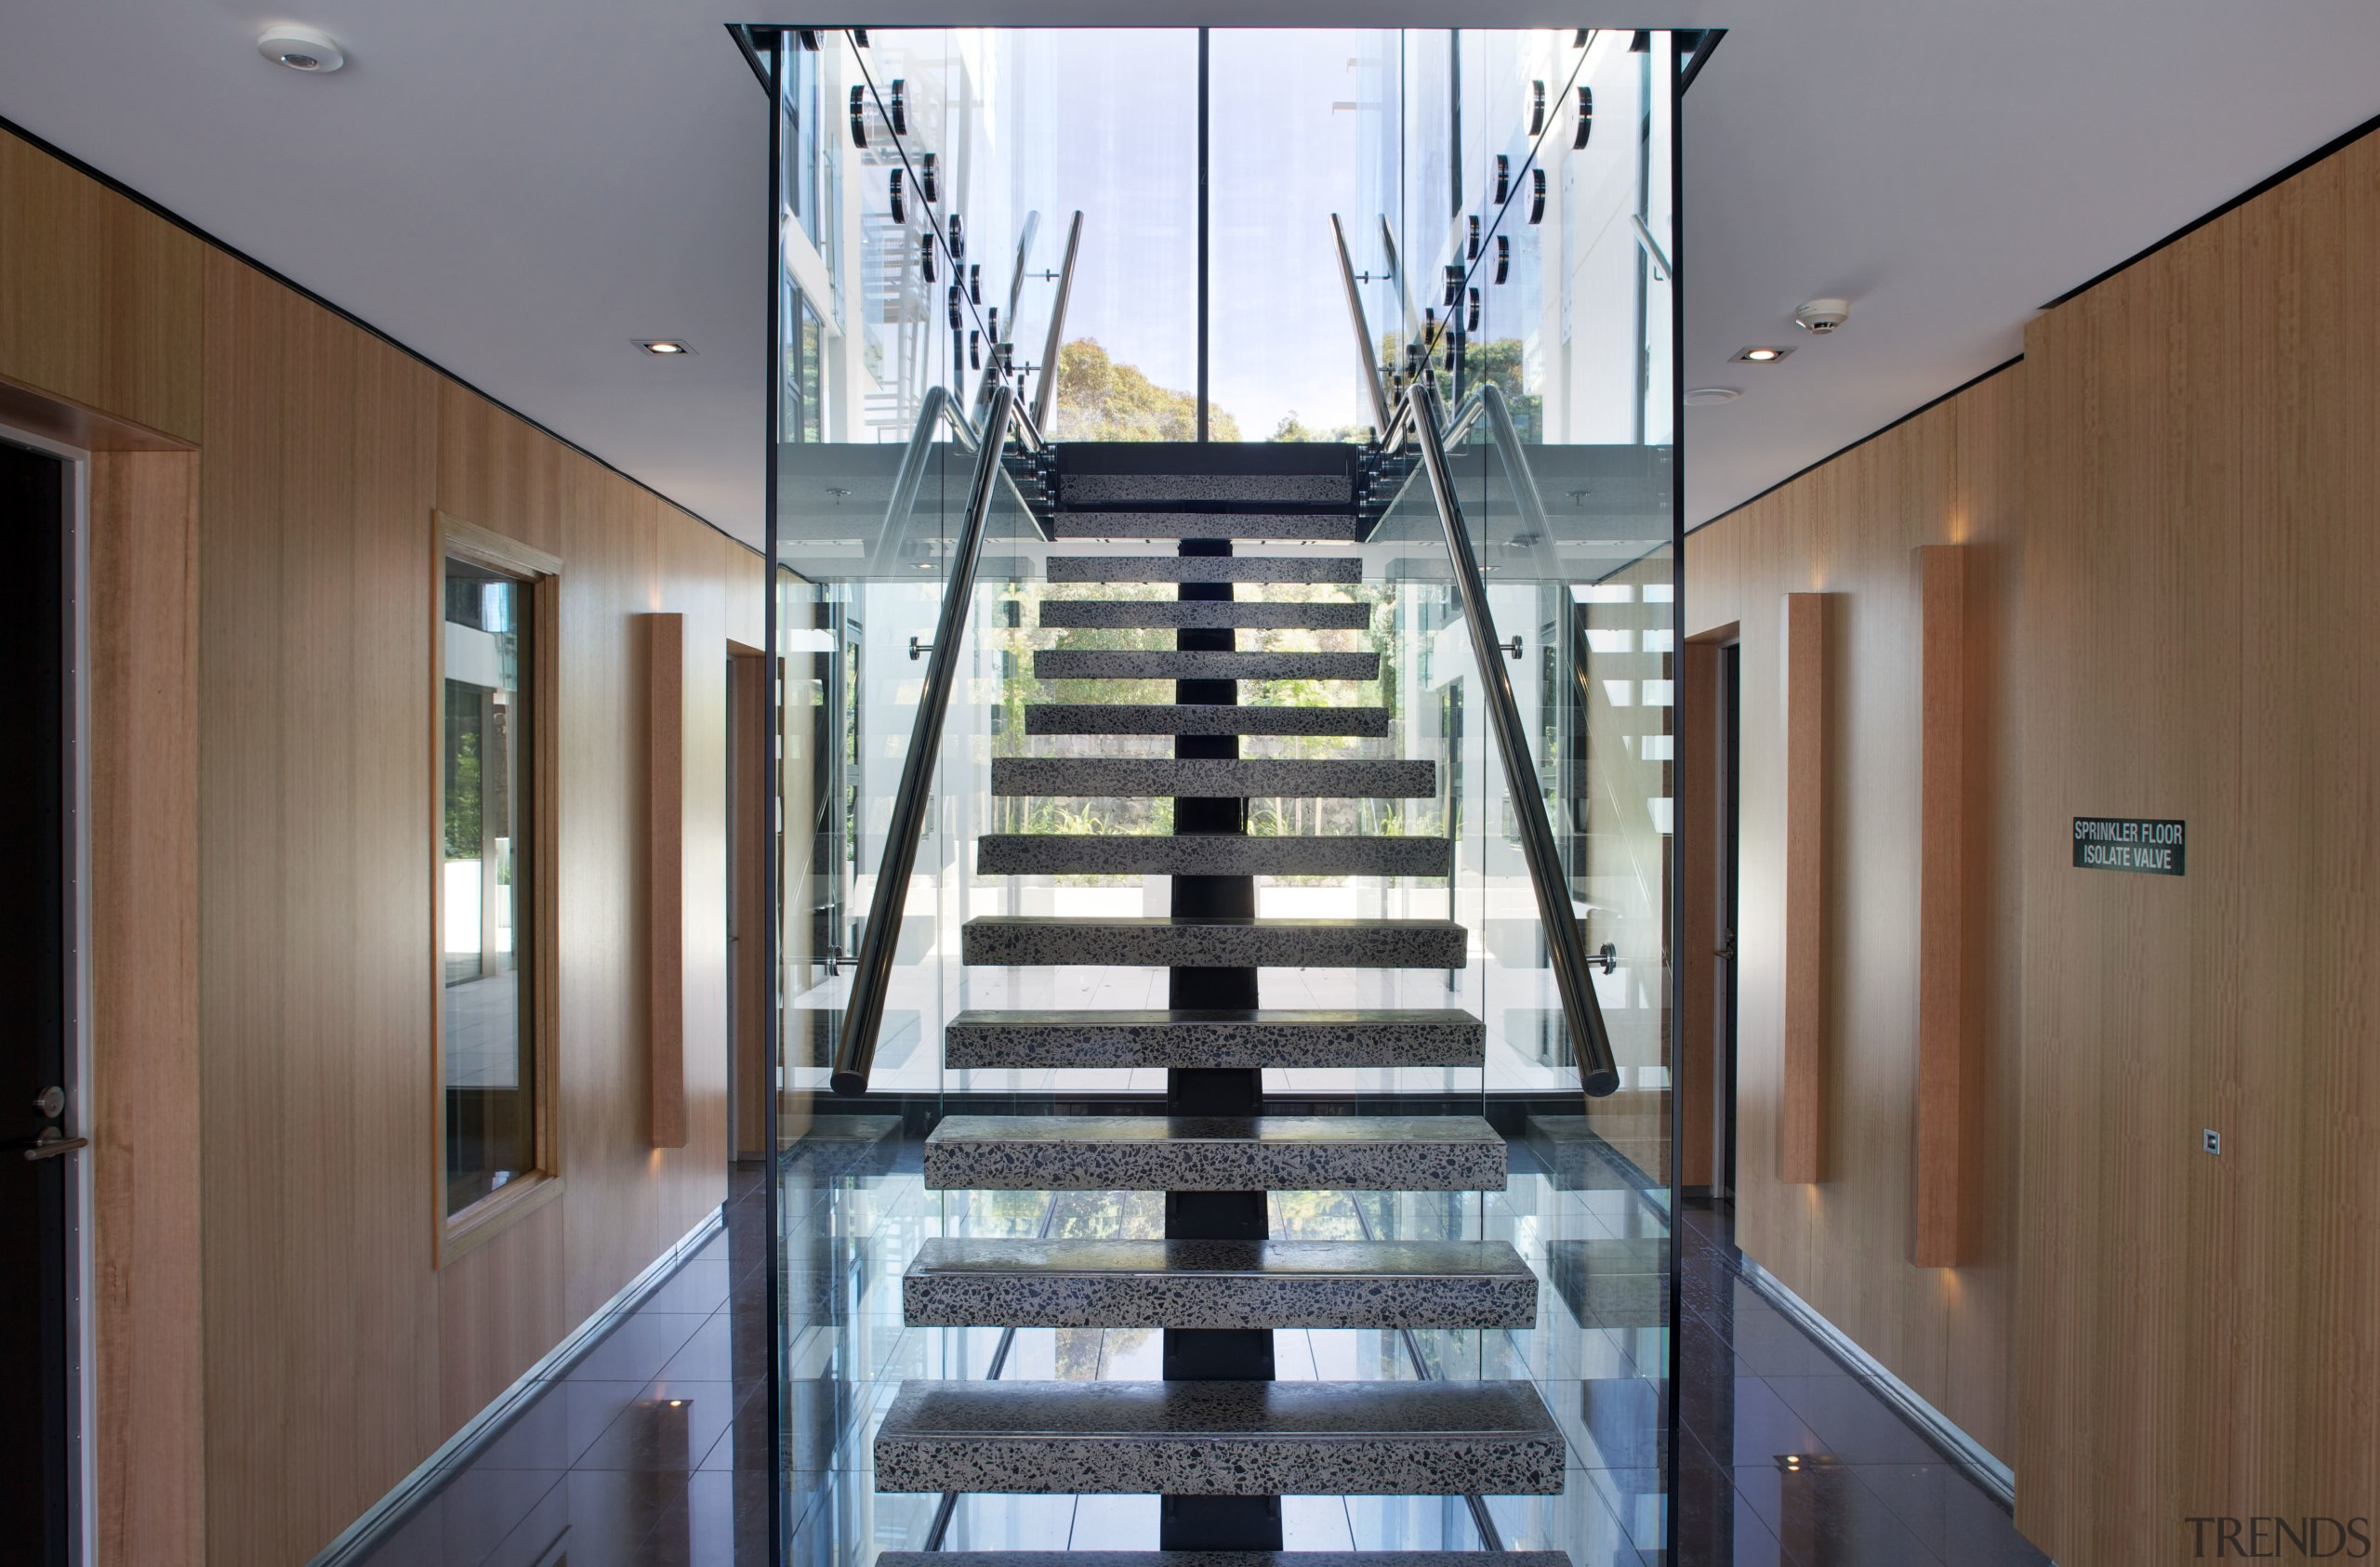 Unlike most apartment buildings, there is a wide architecture, condominium, daylighting, glass, handrail, house, interior design, property, real estate, stairs, window, gray, brown